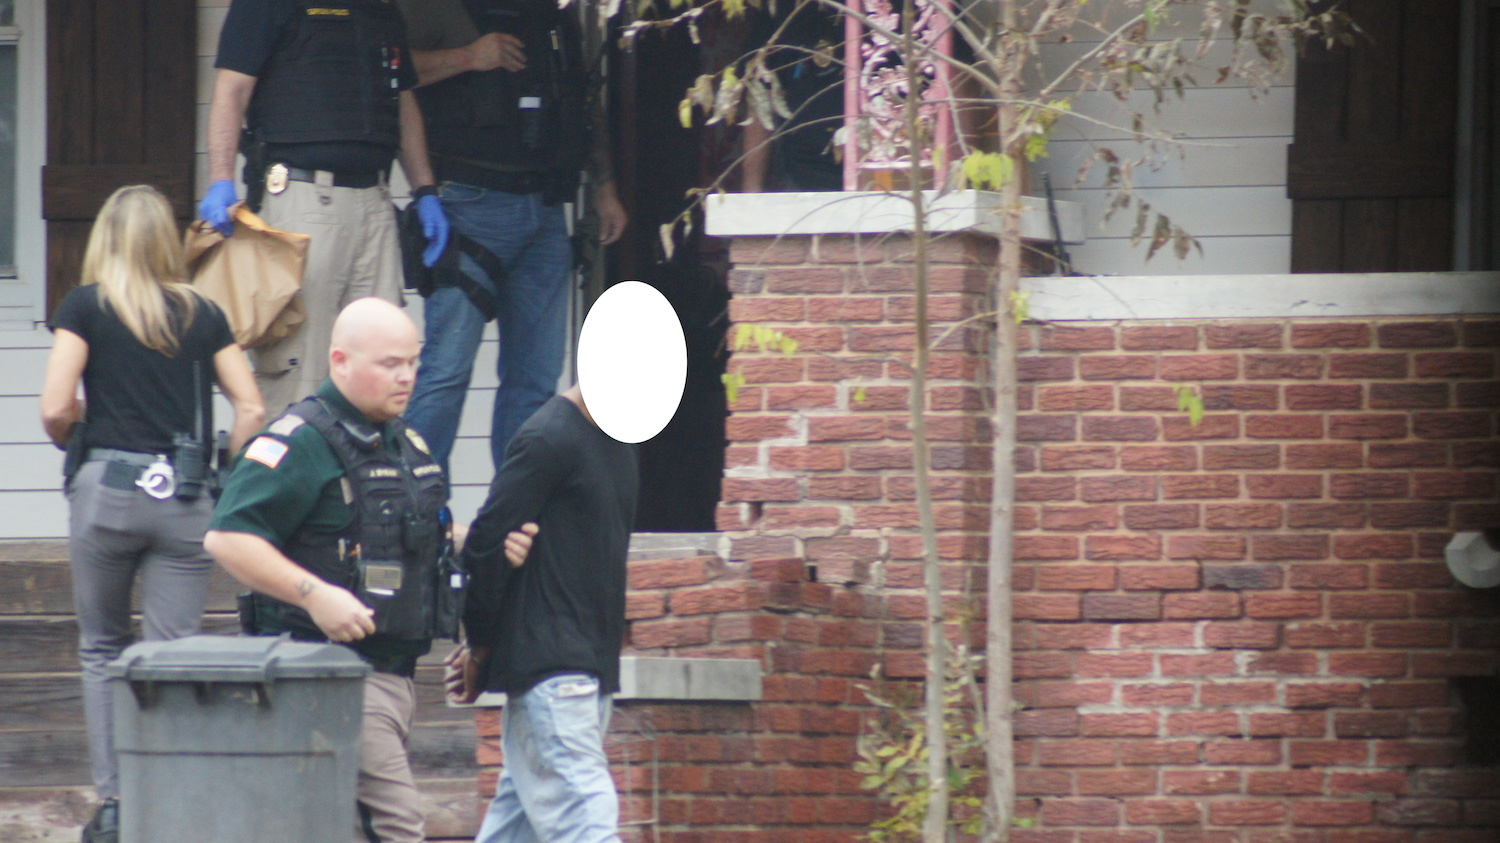 An individual is arrested as part of a warrant sweep this week. Photo by Daryl Howard for Sapulpa Times.